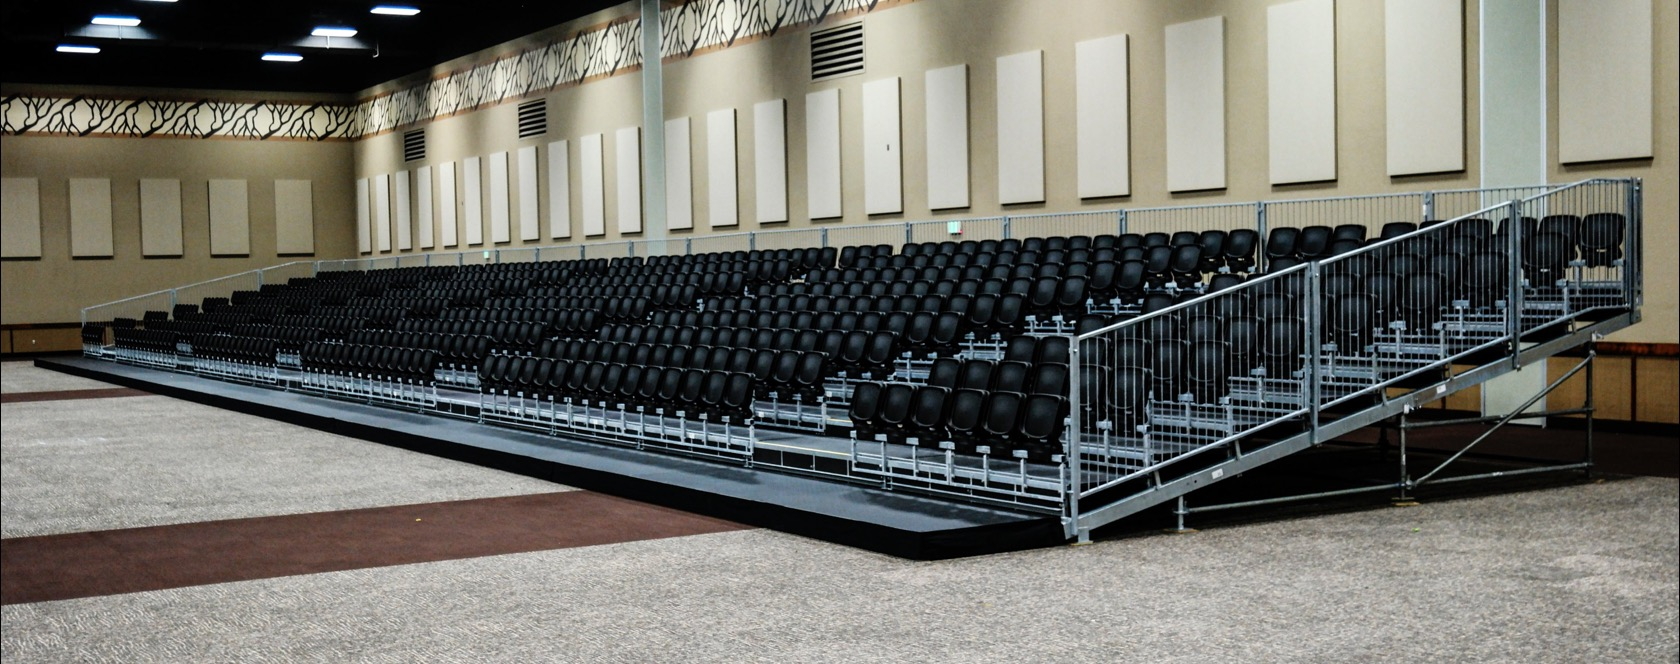 "Event Seating Rental: Stadium ""Tip-Up"" seating"